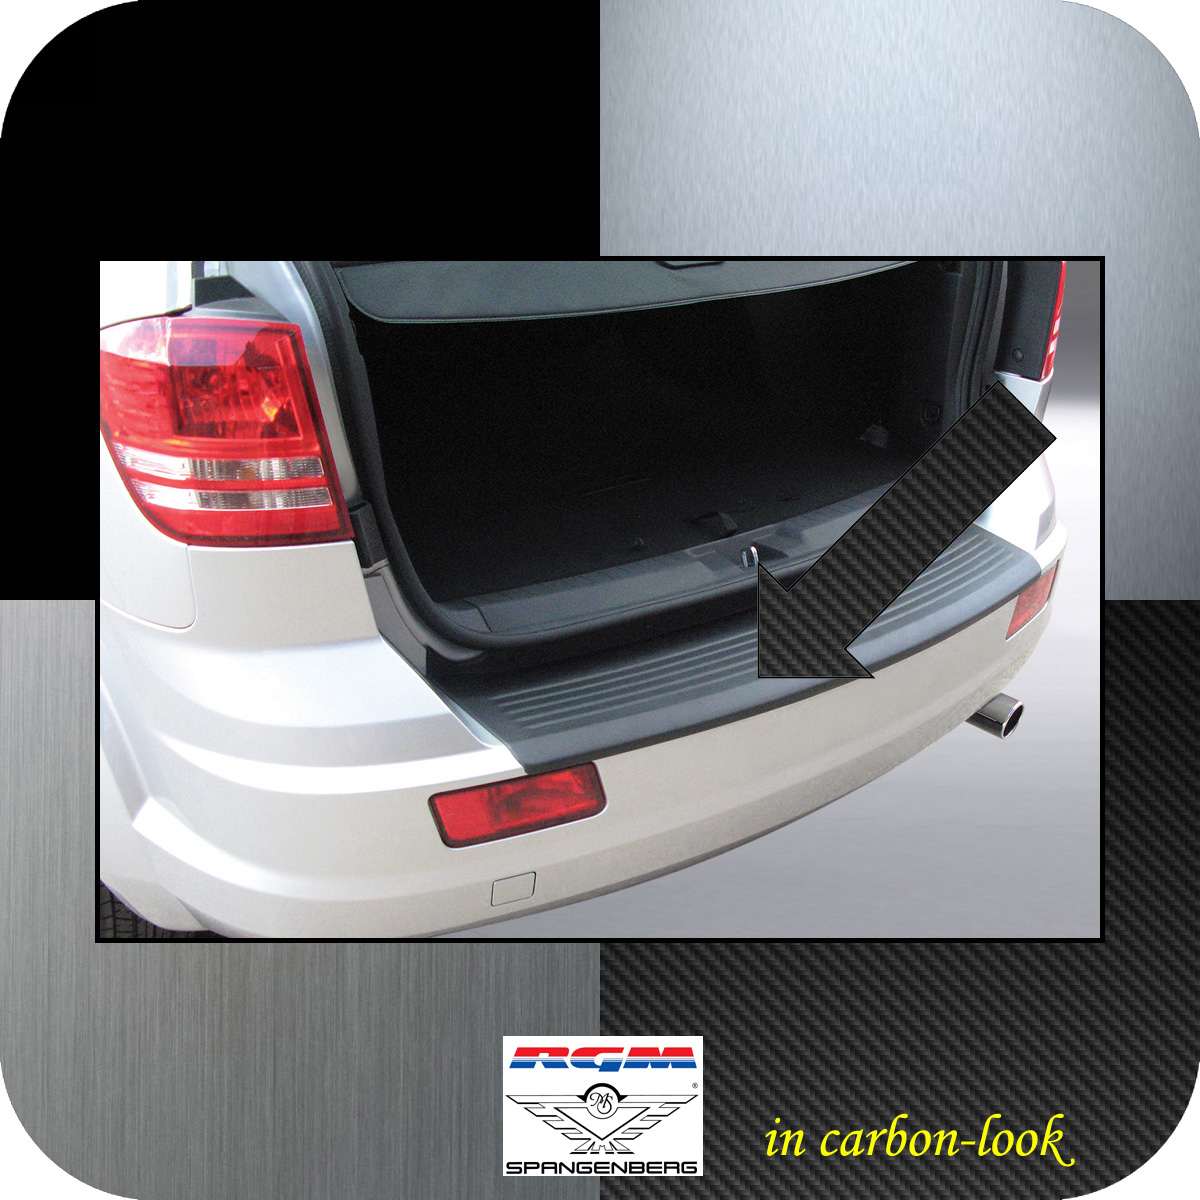 Ladekantenschutz Carbon-Look Dodge Journey SUV vor facelift 2007-2011 3509267